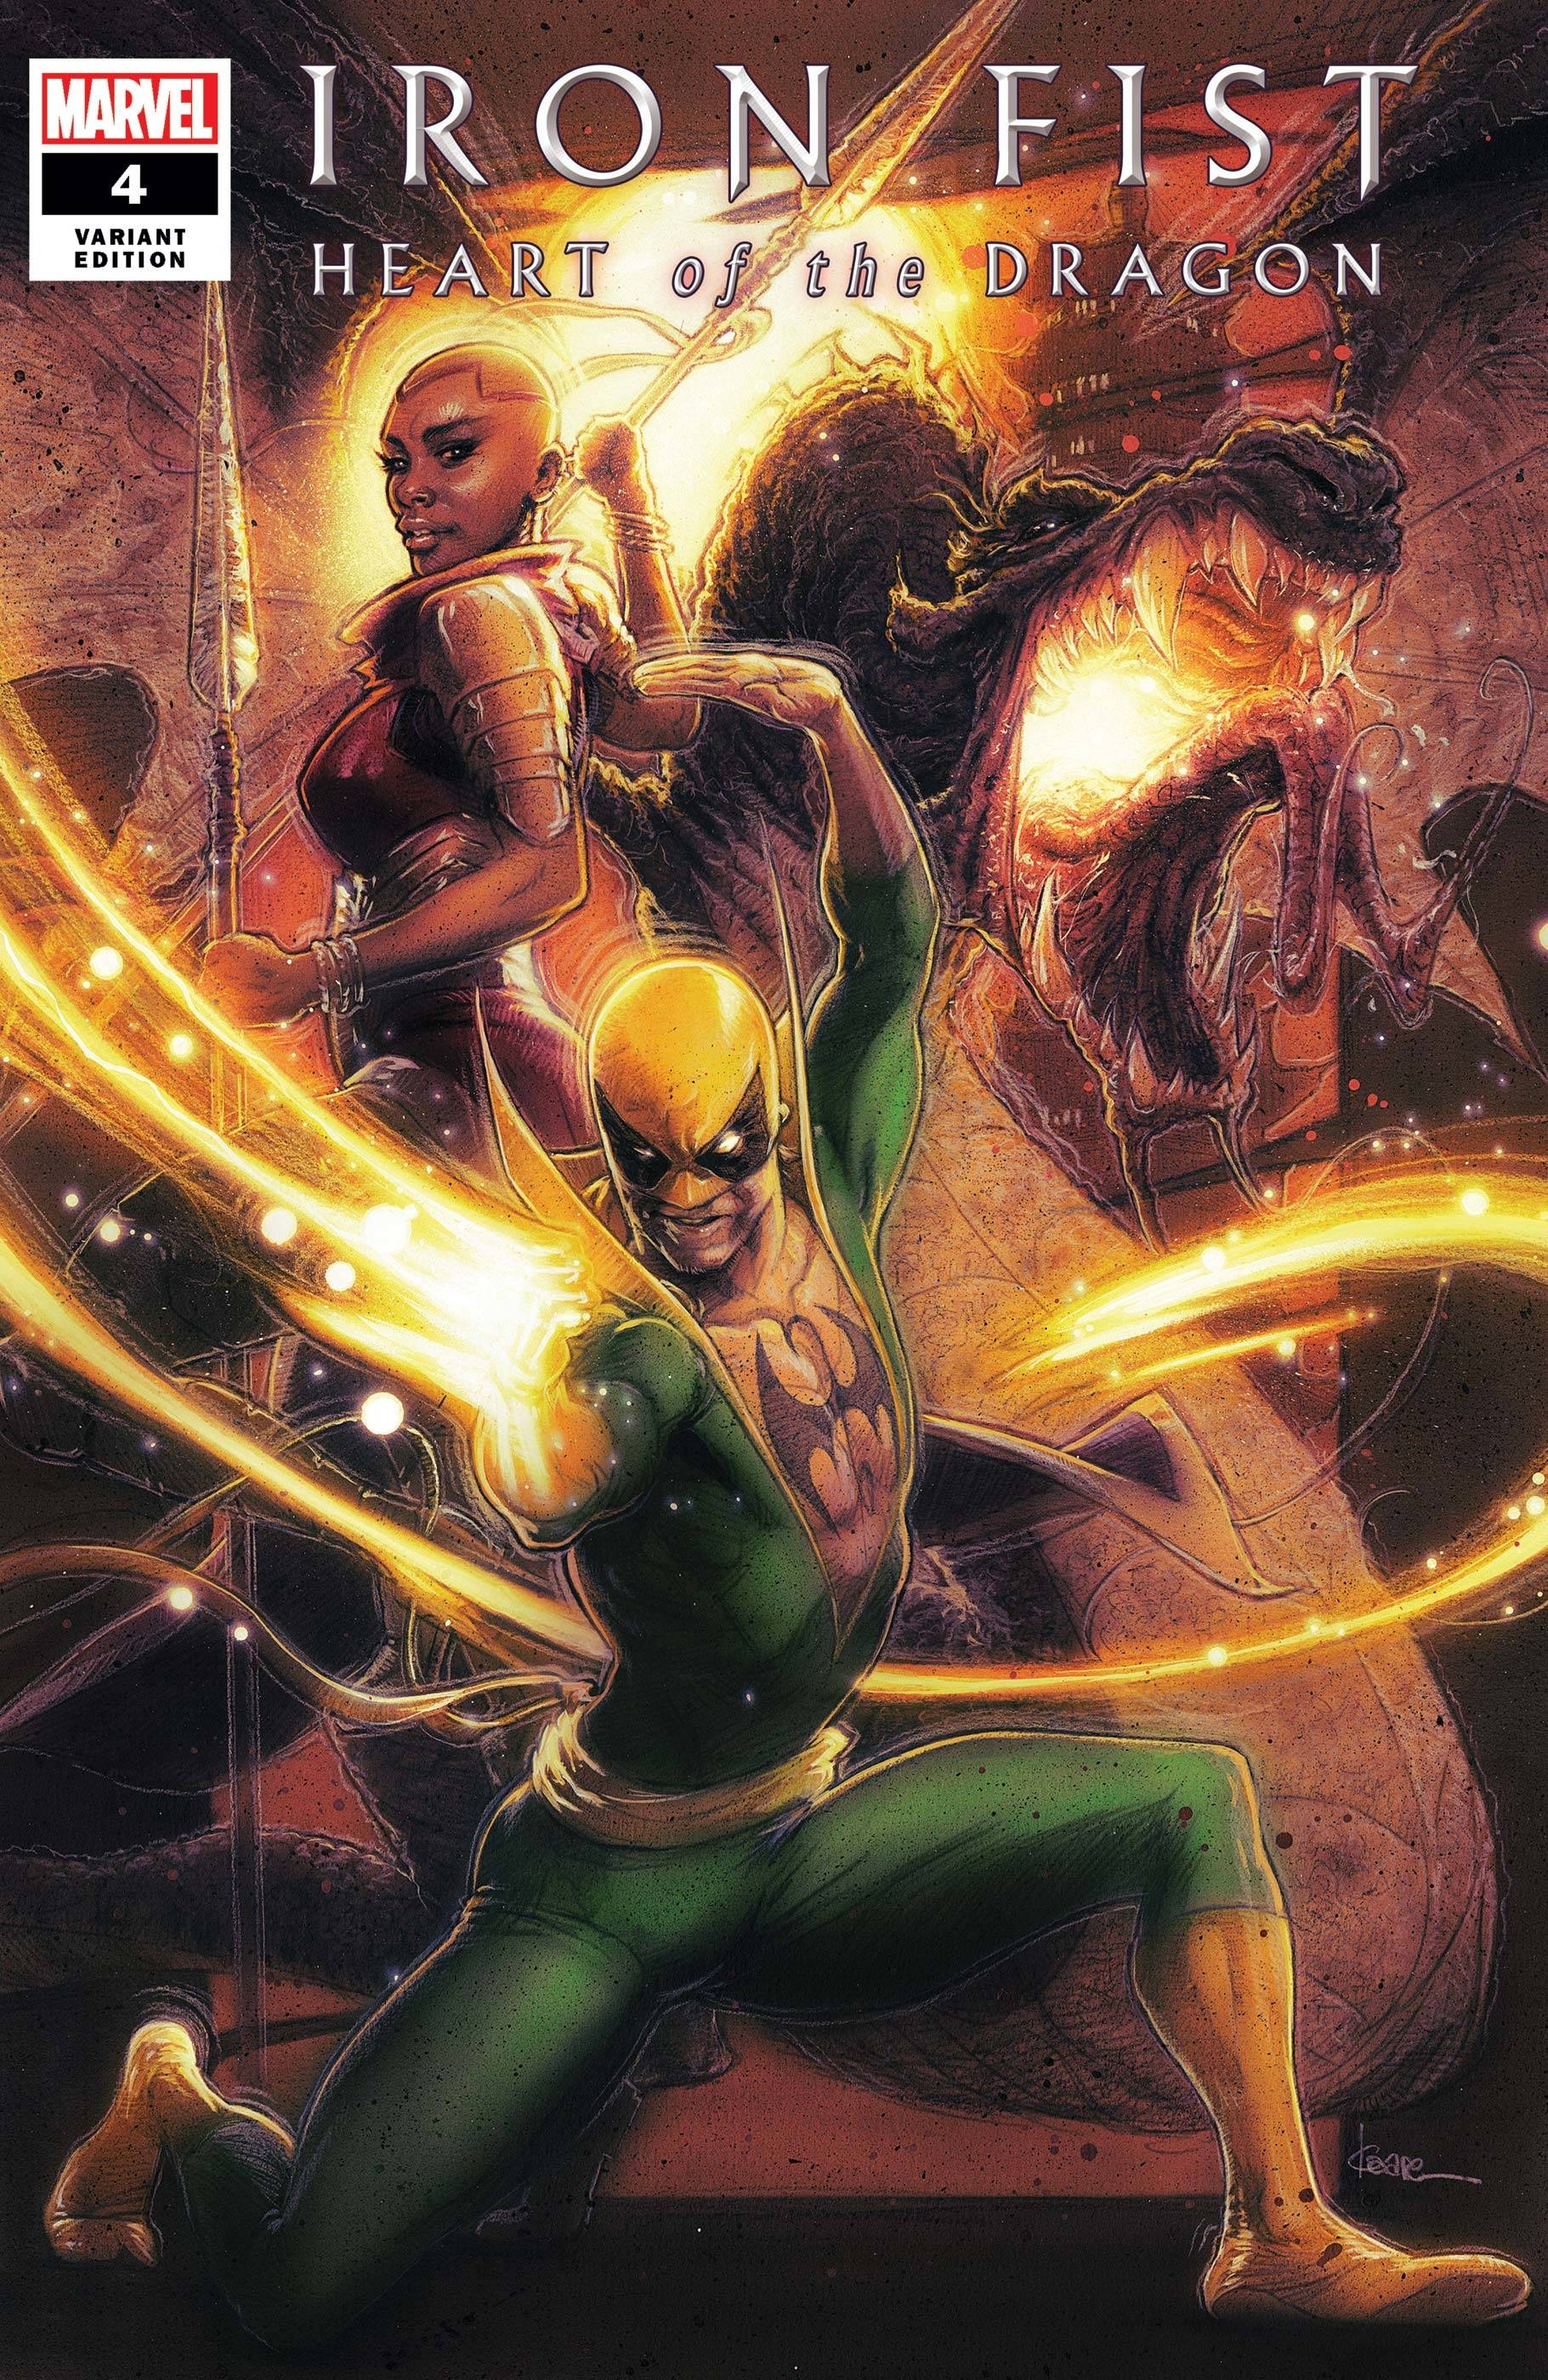 IRON FIST HEART OF DRAGON #4 (OF 6) ANDREWS VAR